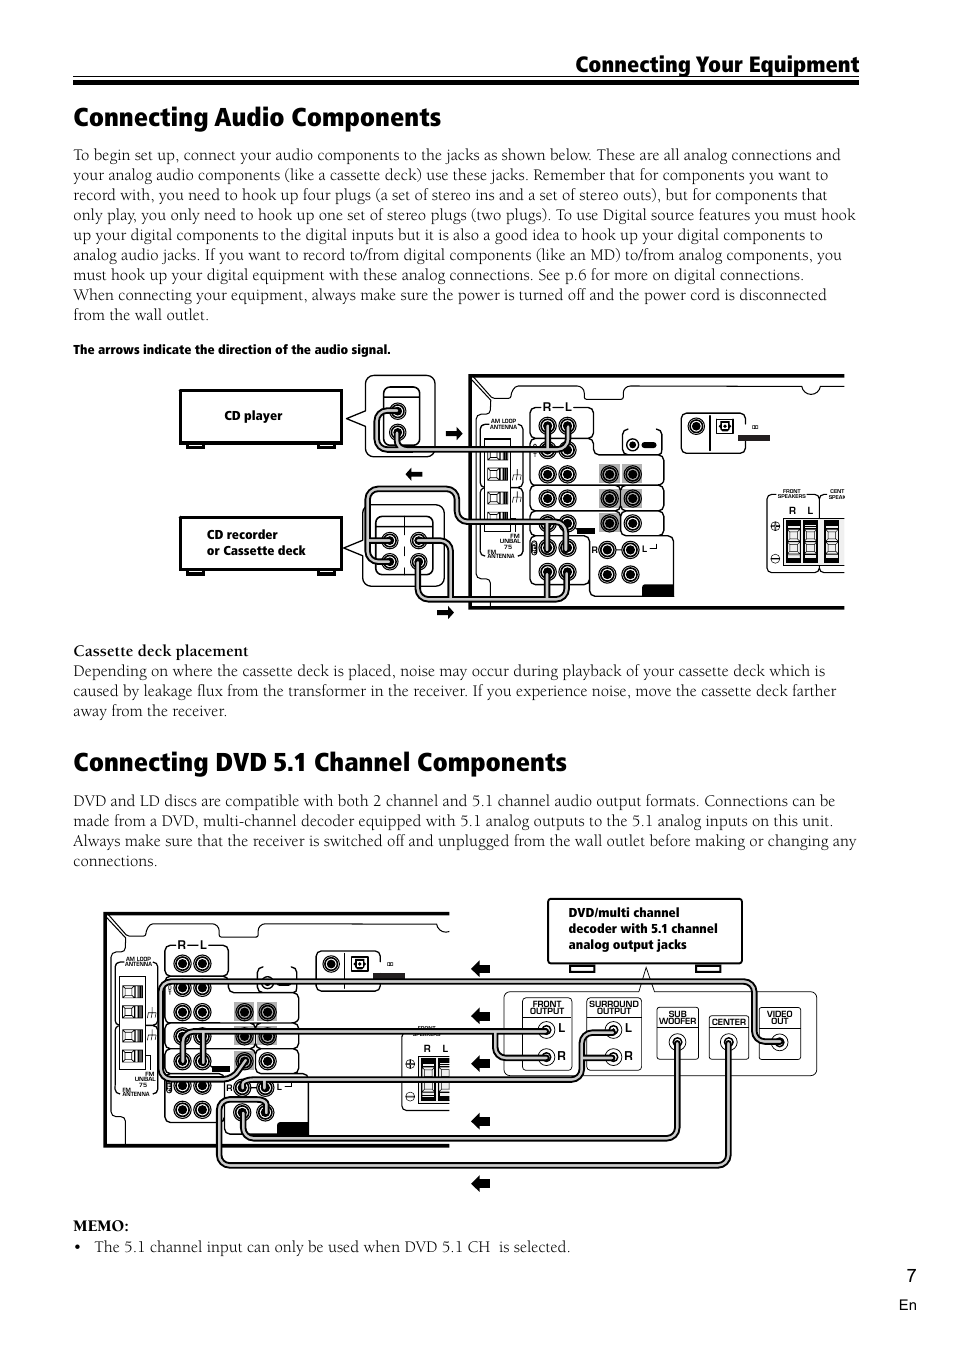 hight resolution of connecting audio components 7 connecting dvd 5 1 channel components 7 connecting audio components